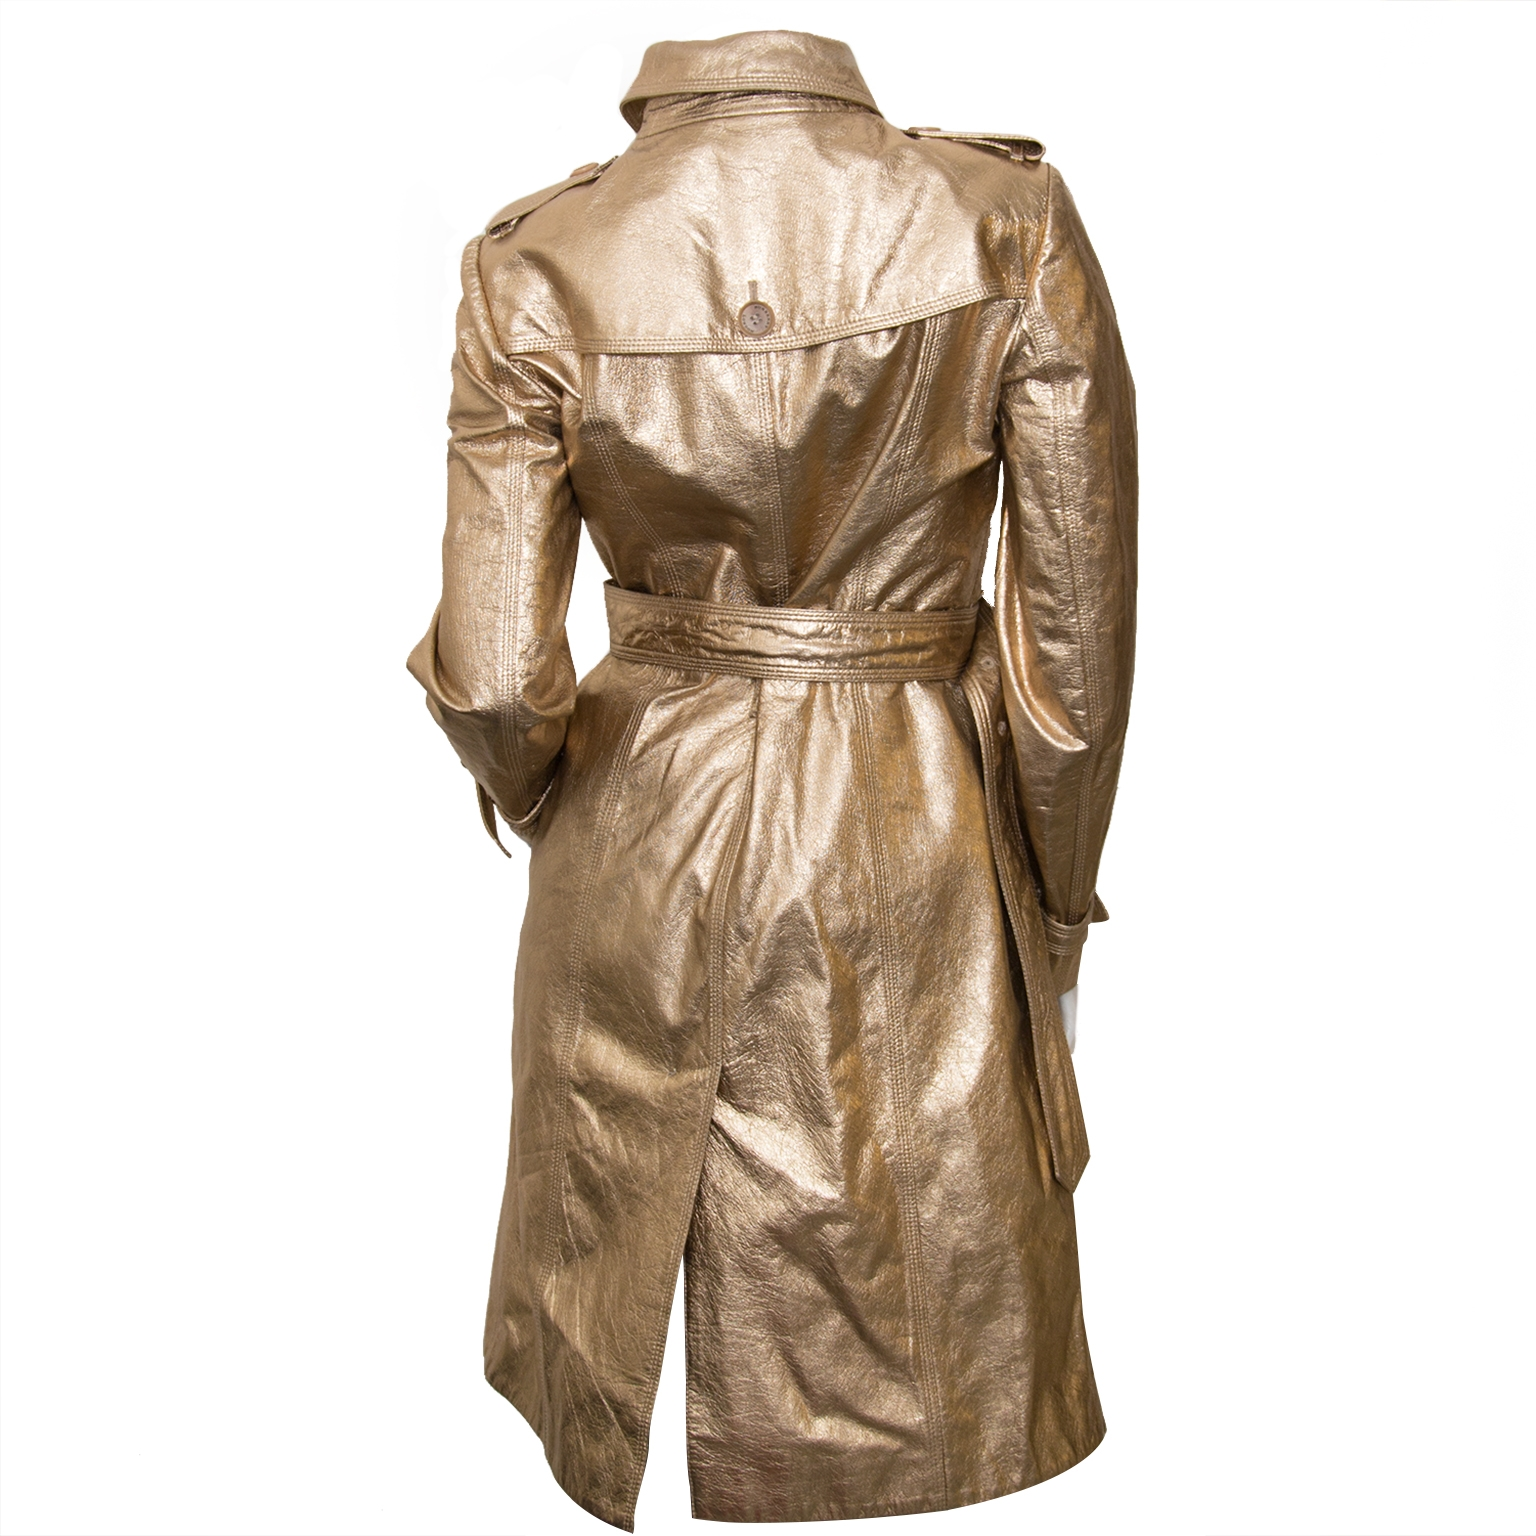 burberry metallic trench coat now for sale at labellov vintage fashion webshop belgium